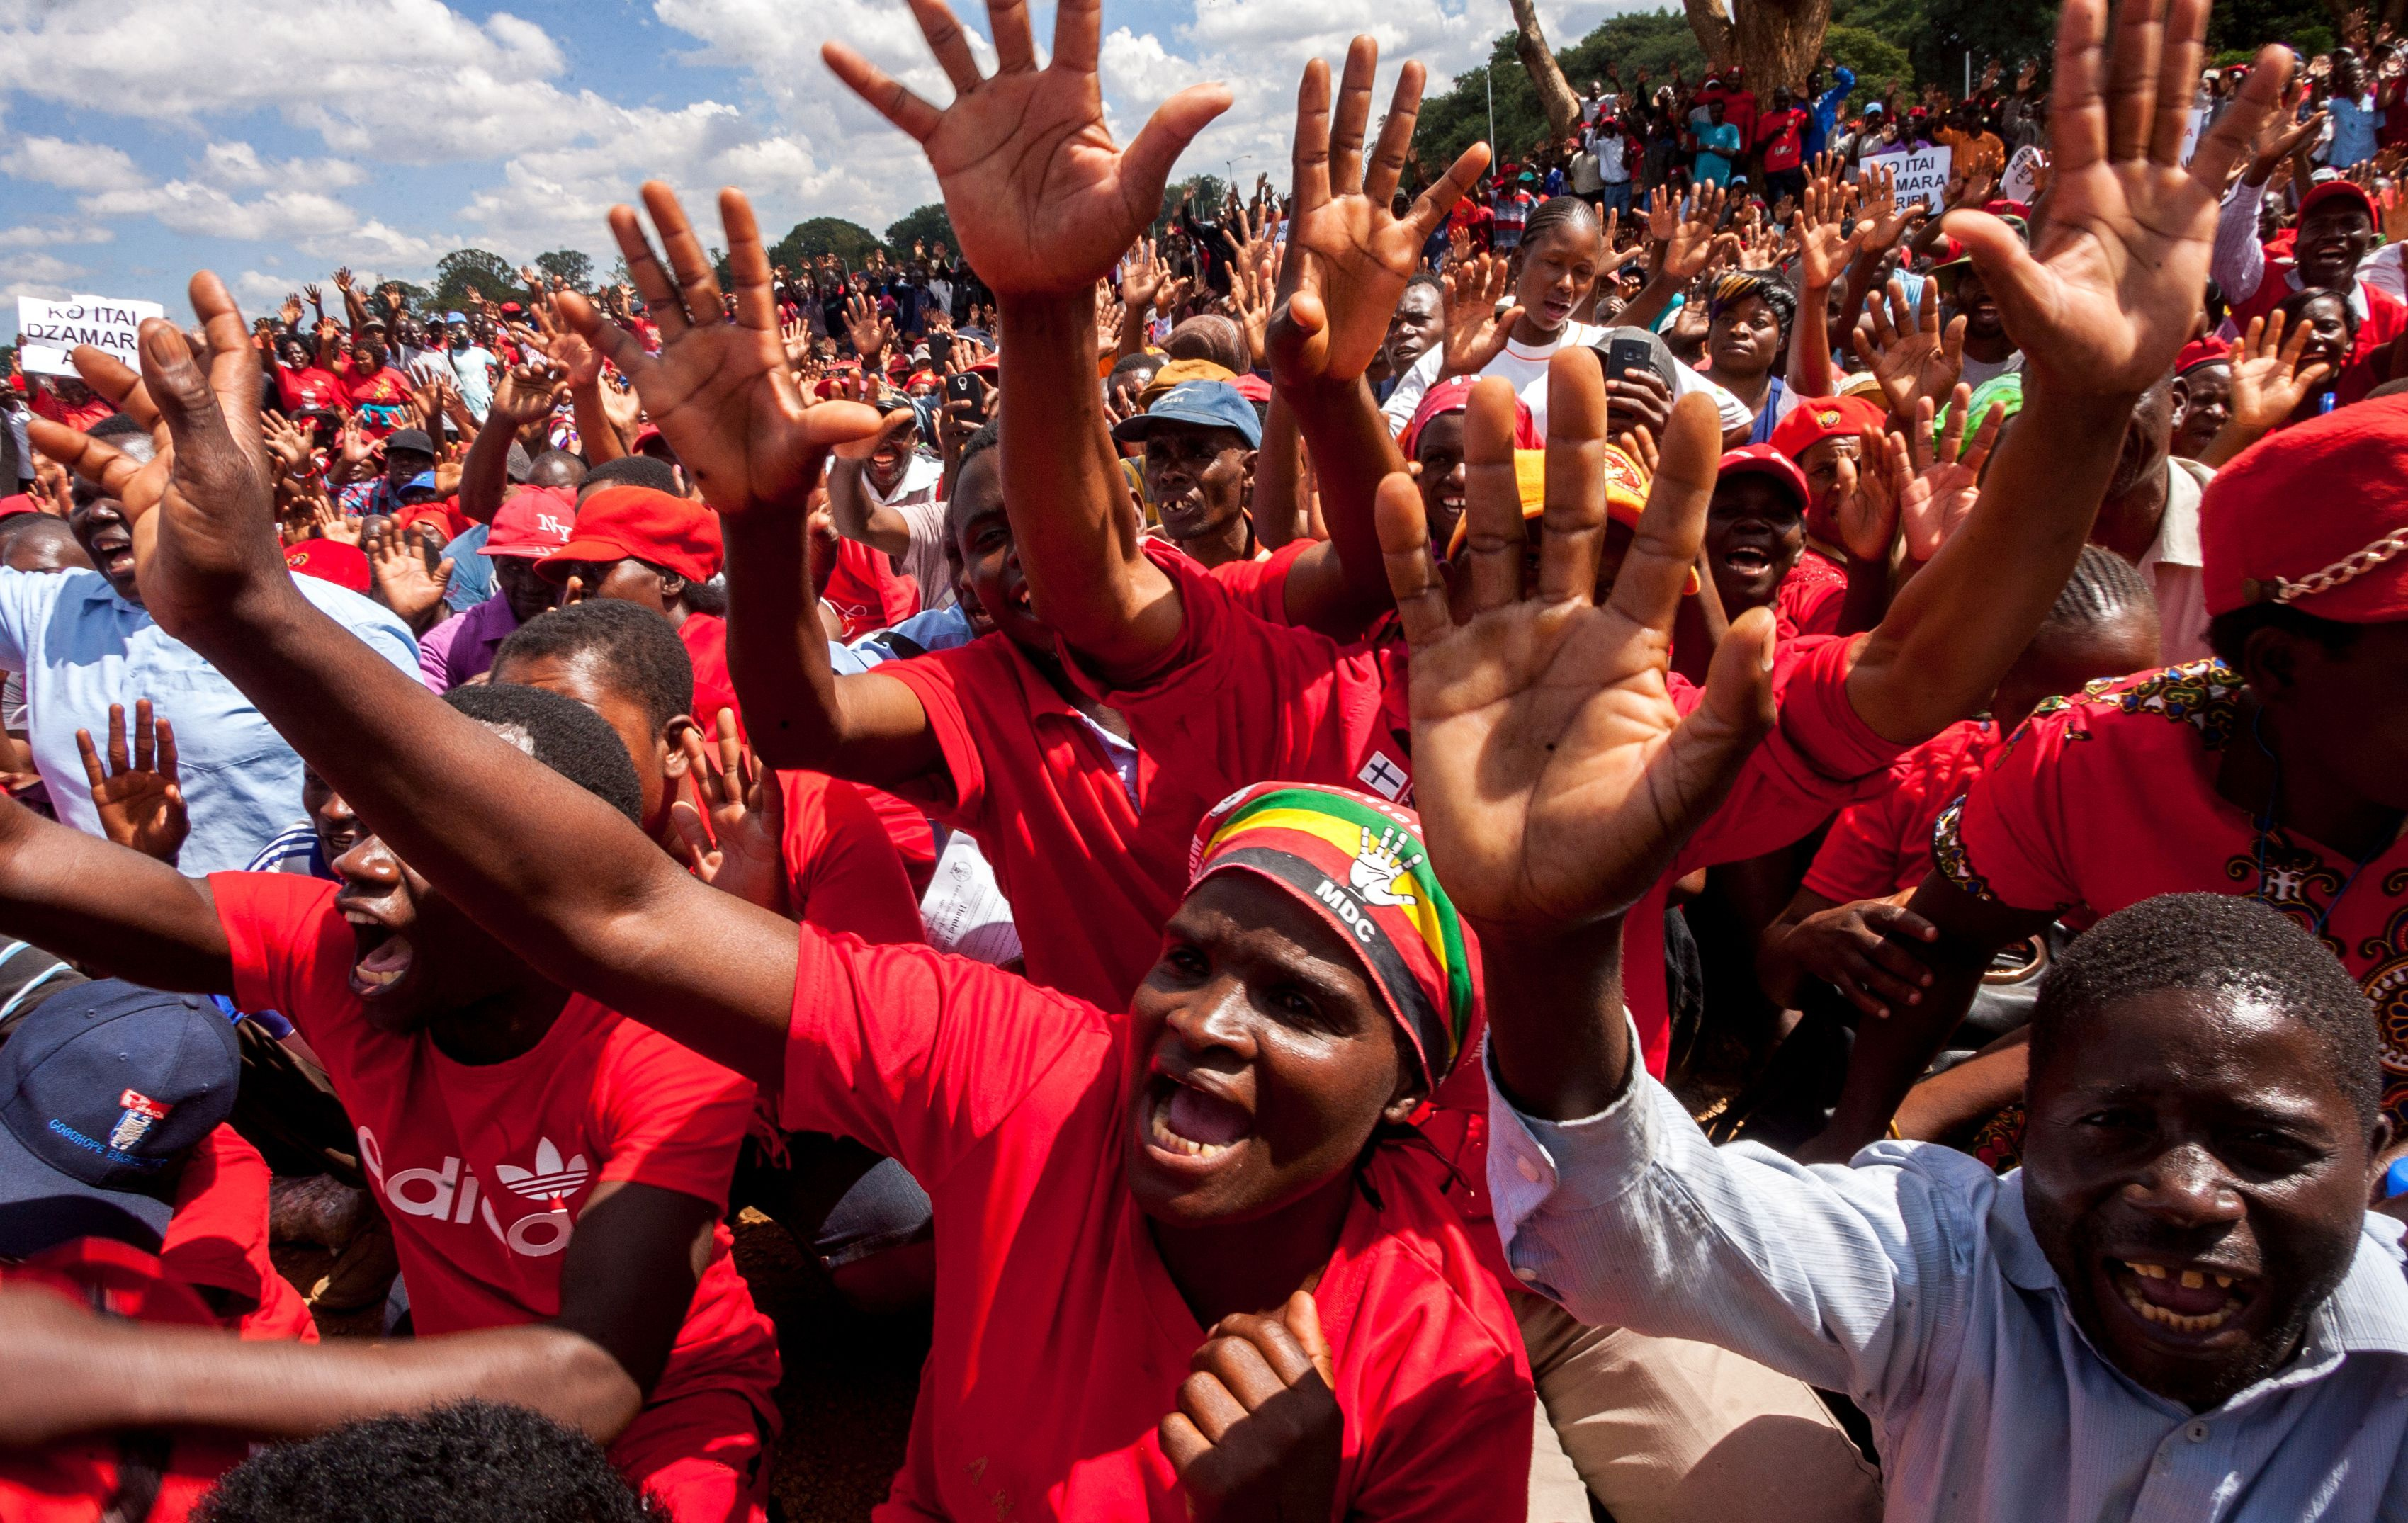 Movement for Democratic Change (MDC) supporters raise their hands in the party slogan during a demonstration by the opposition party in Harare on April 14, 2016. / AFP / JEKESAI NJIKIZANA        (Photo credit should read JEKESAI NJIKIZANA/AFP/Getty Images)